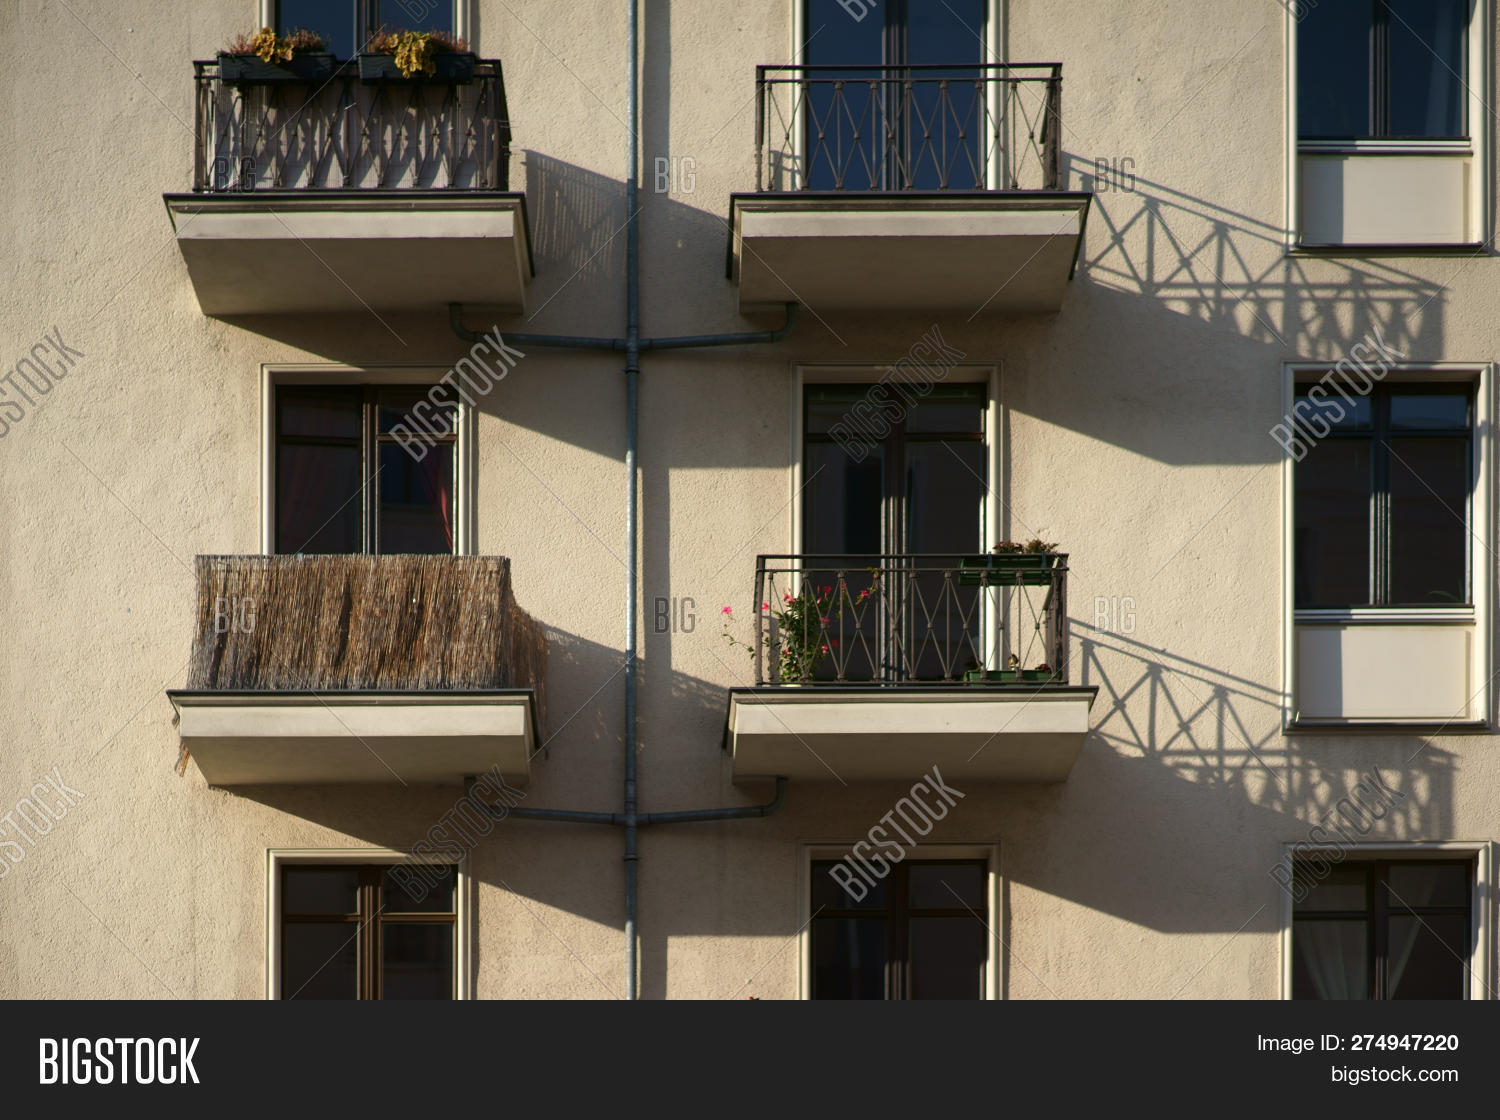 🔥 The Railings Of Small Nostalgic Balconies Of An Apartment ...